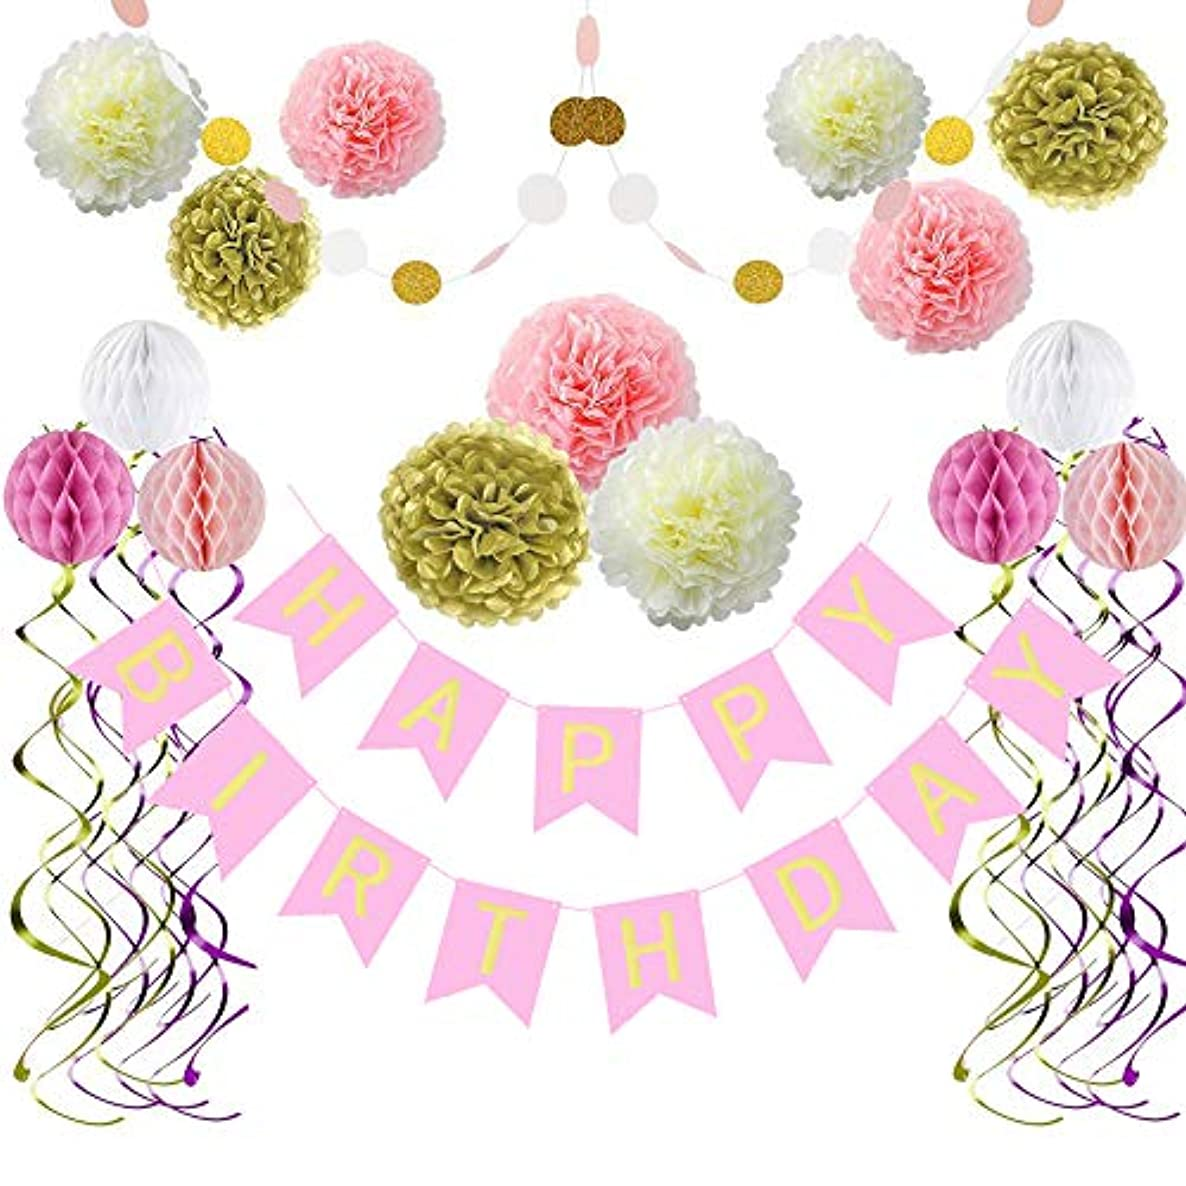 Colorful Birthday Party Supplies Birthday Decorations, Happy Birthday Bunting Banner, Hanging Swirls, Paper Garland, Paper flowers and Honeycomb Balls